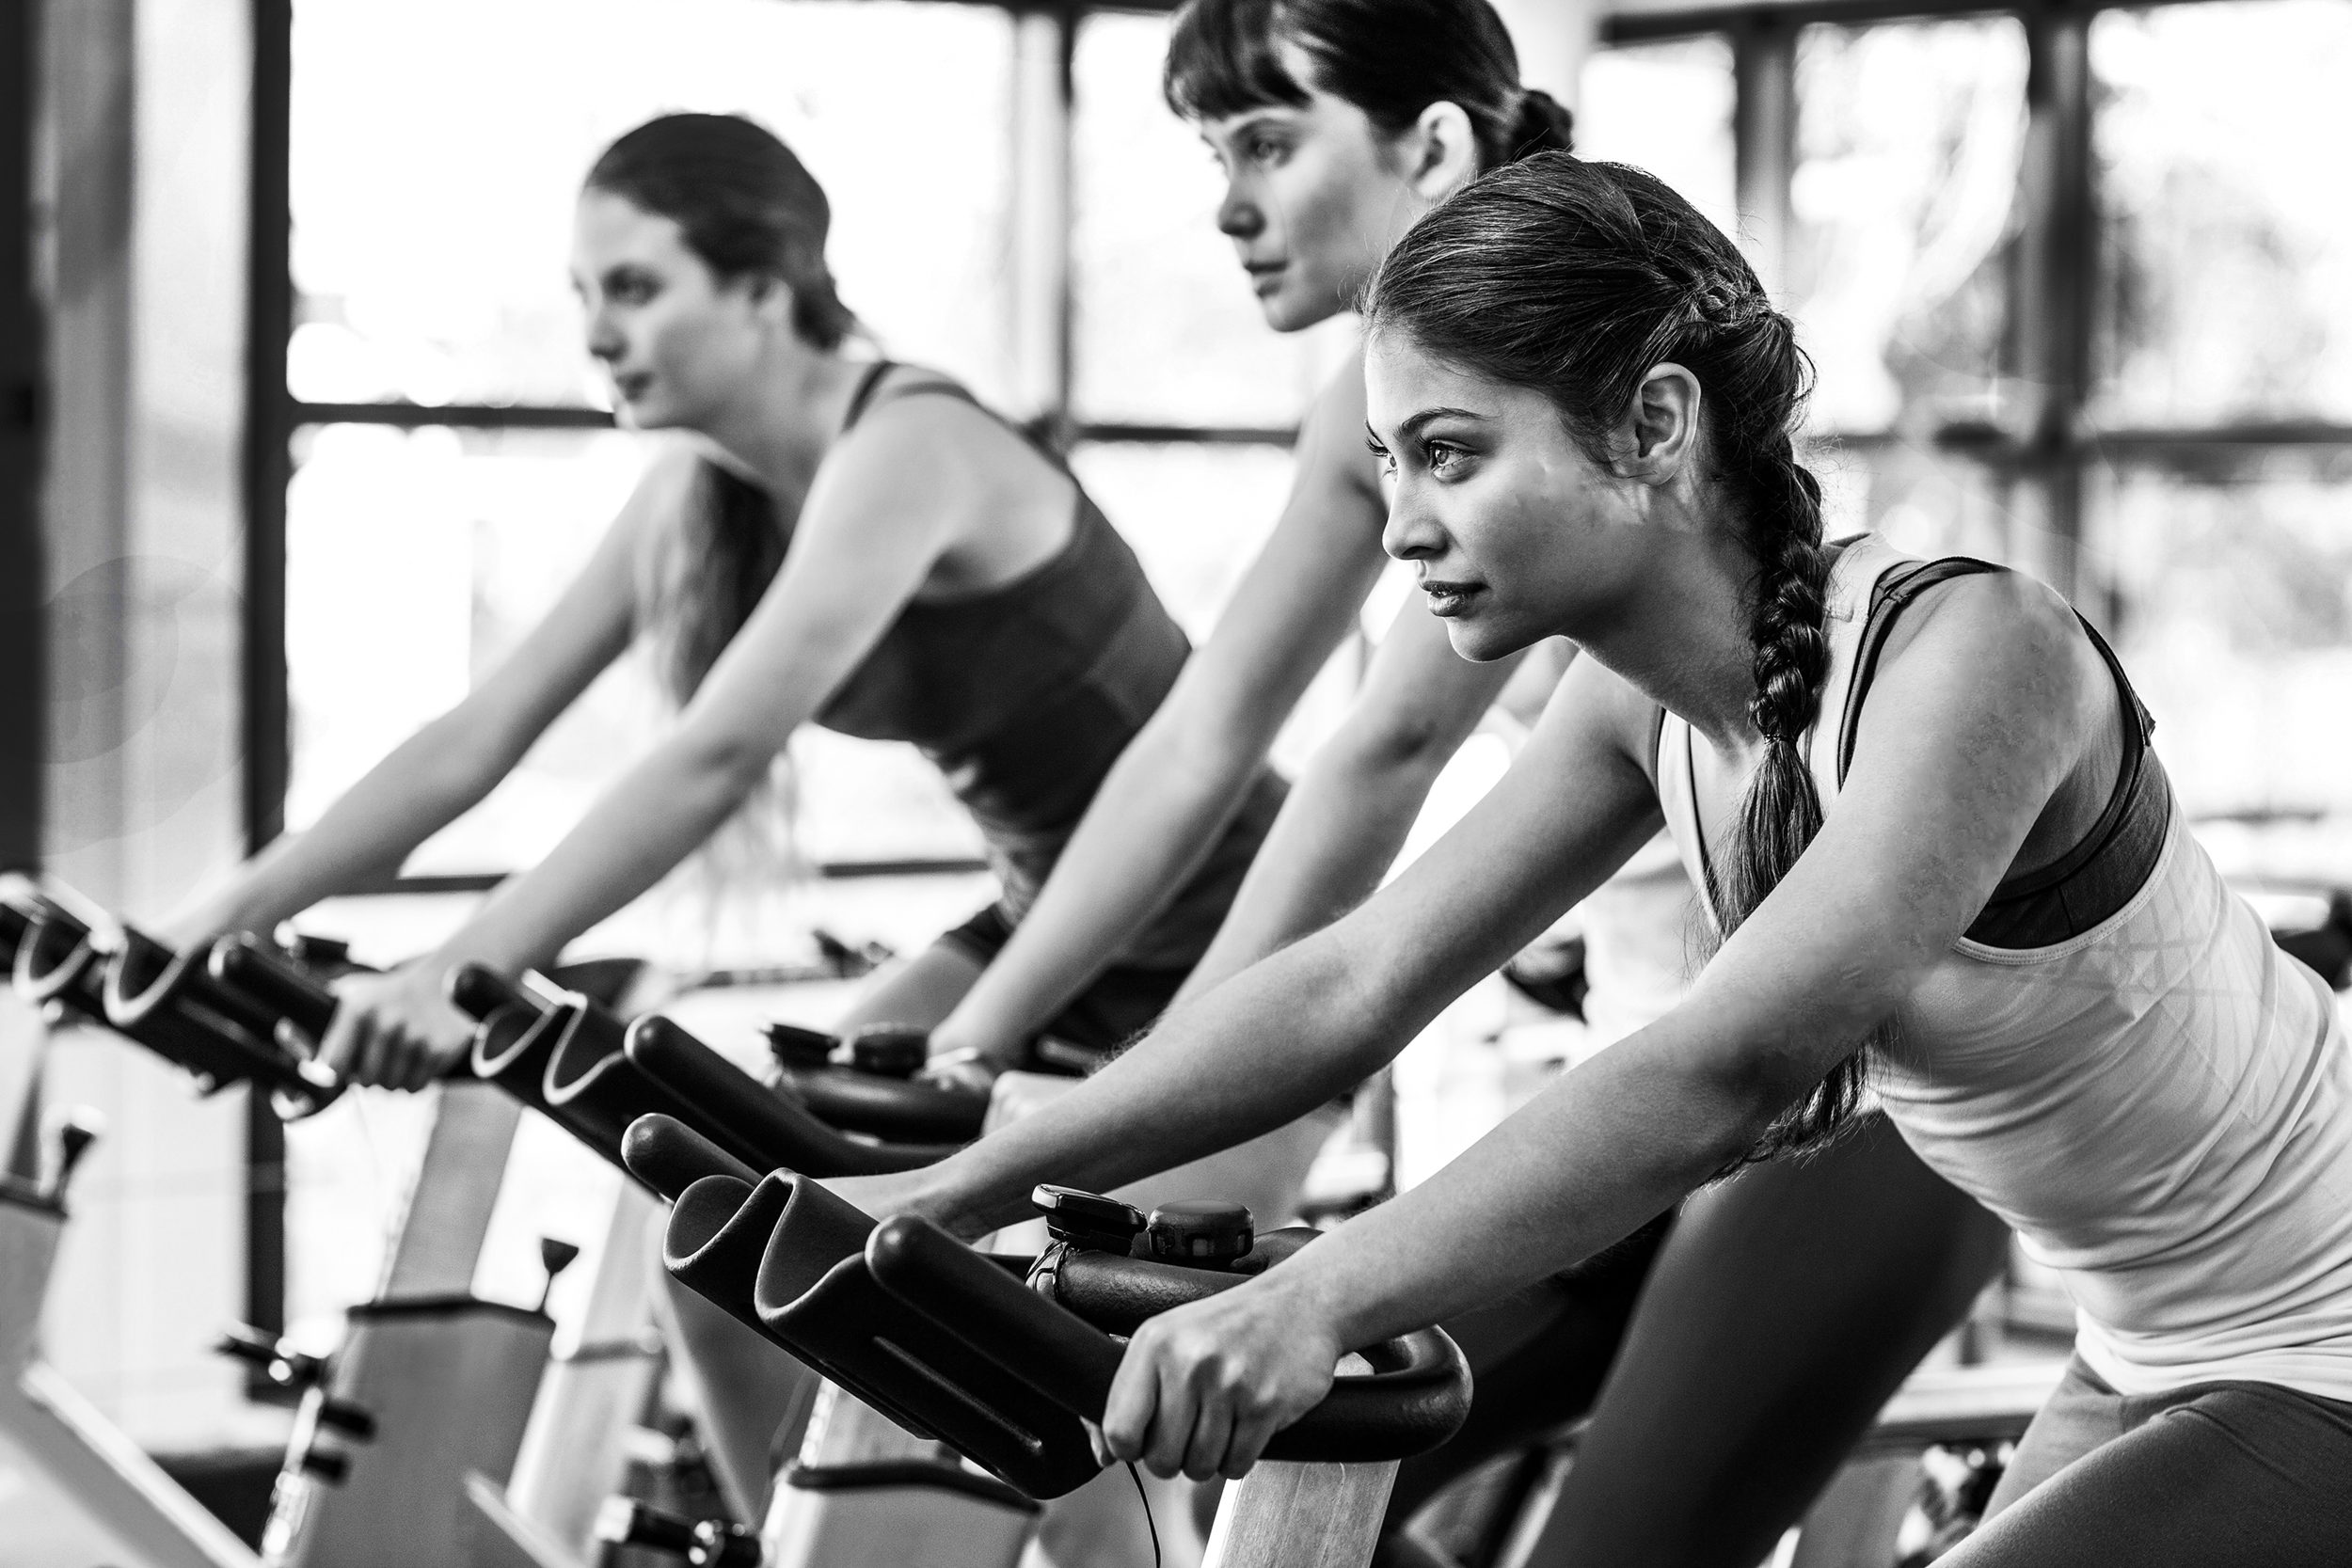 Cycling - We offer classes for every level, and each class is capped at 11 bikes so everyone can get the individual attention they need.